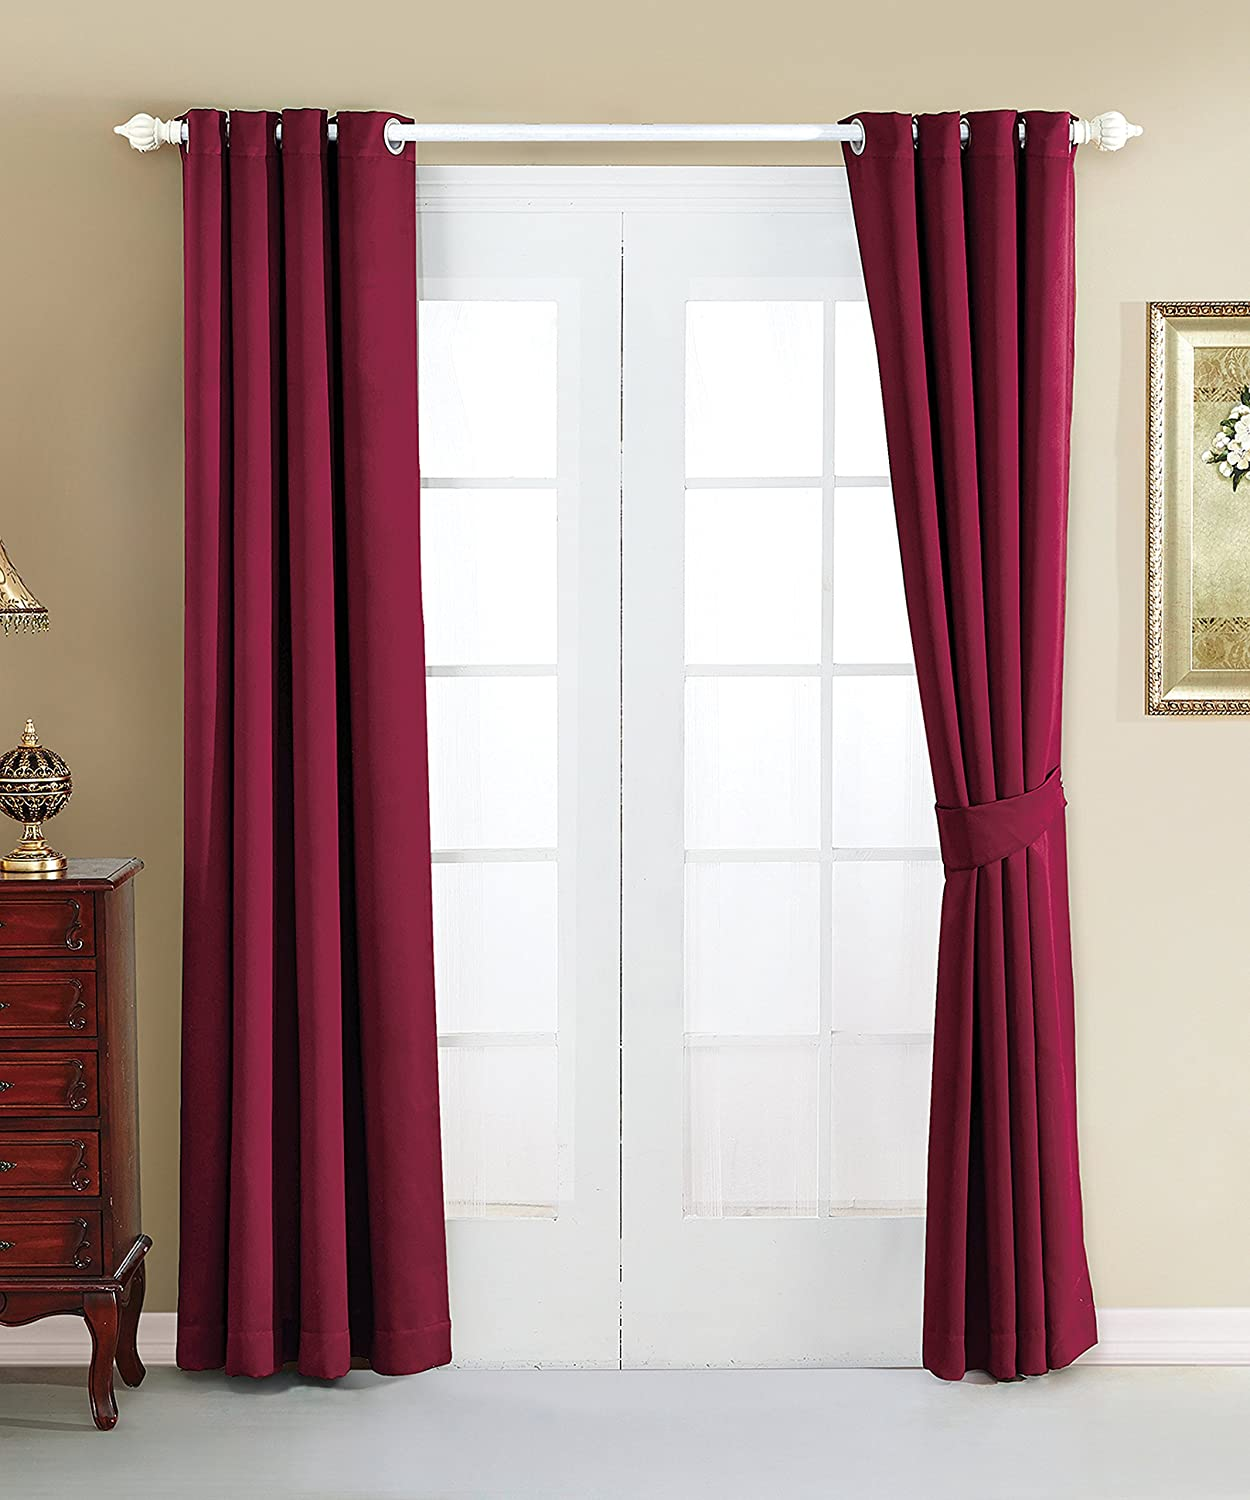 Serenta 4 Piece Grommet Darkening Thermal Insulated Blackout Window Panel Curtain